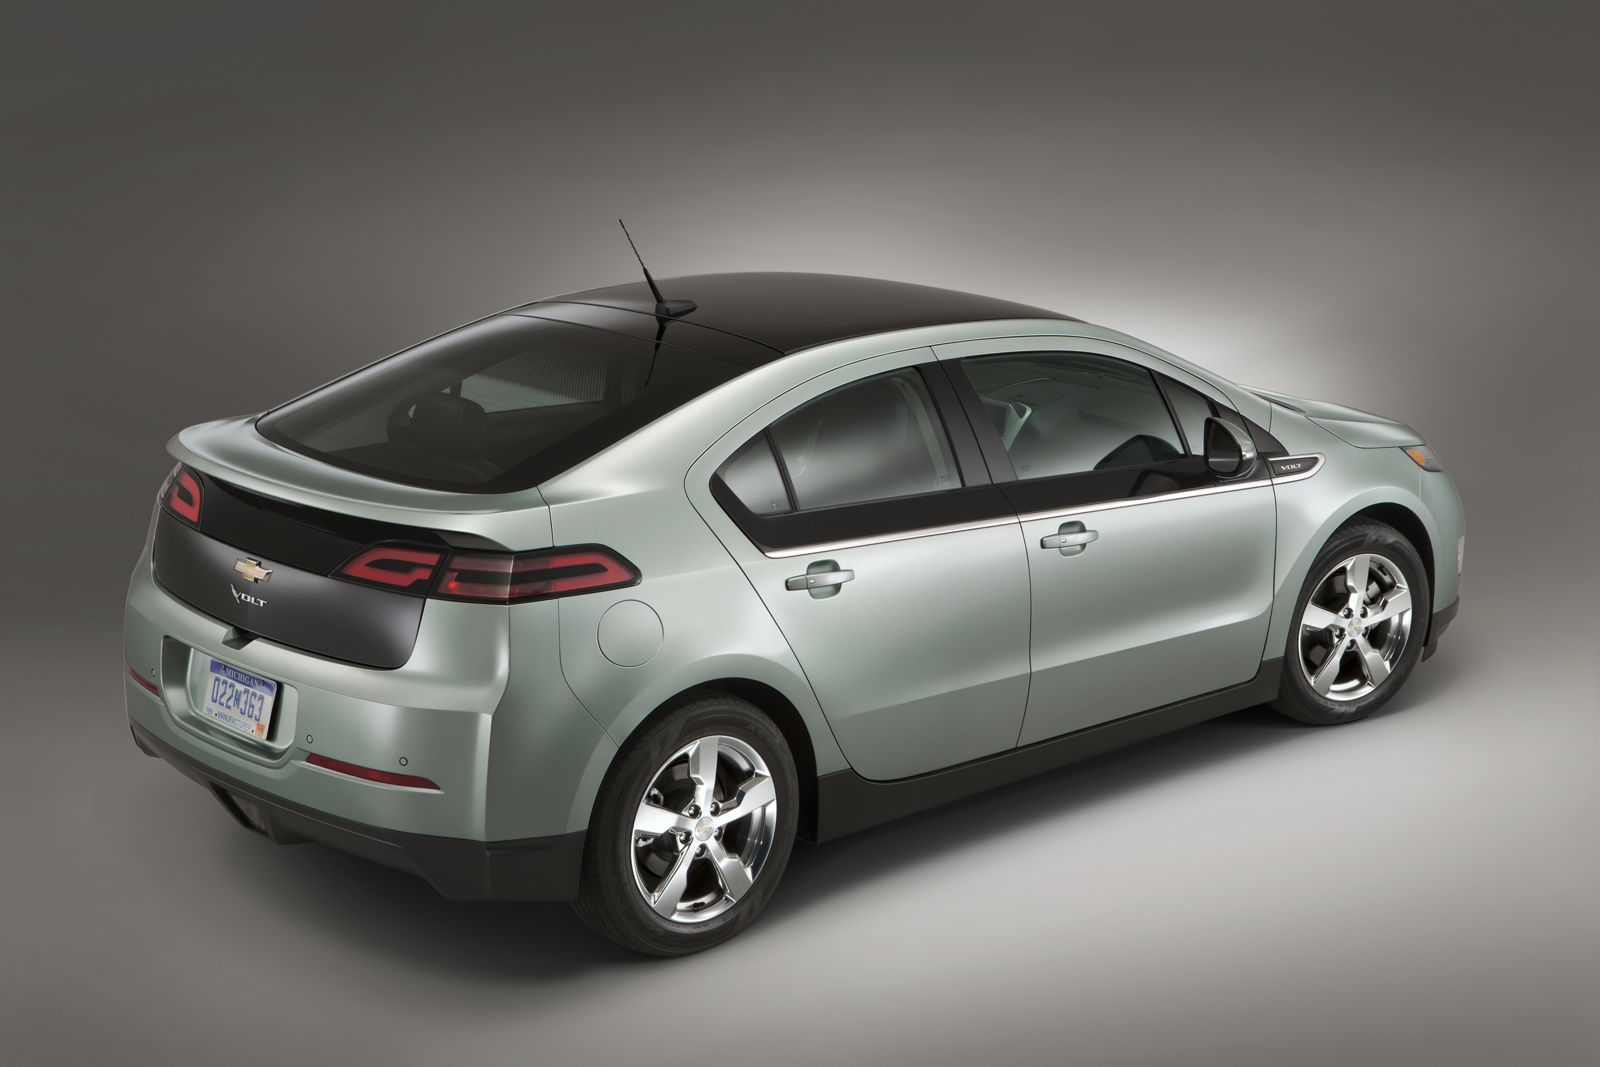 Car Electrical Voltage : Chevy volt electric car has highest customer satisfaction